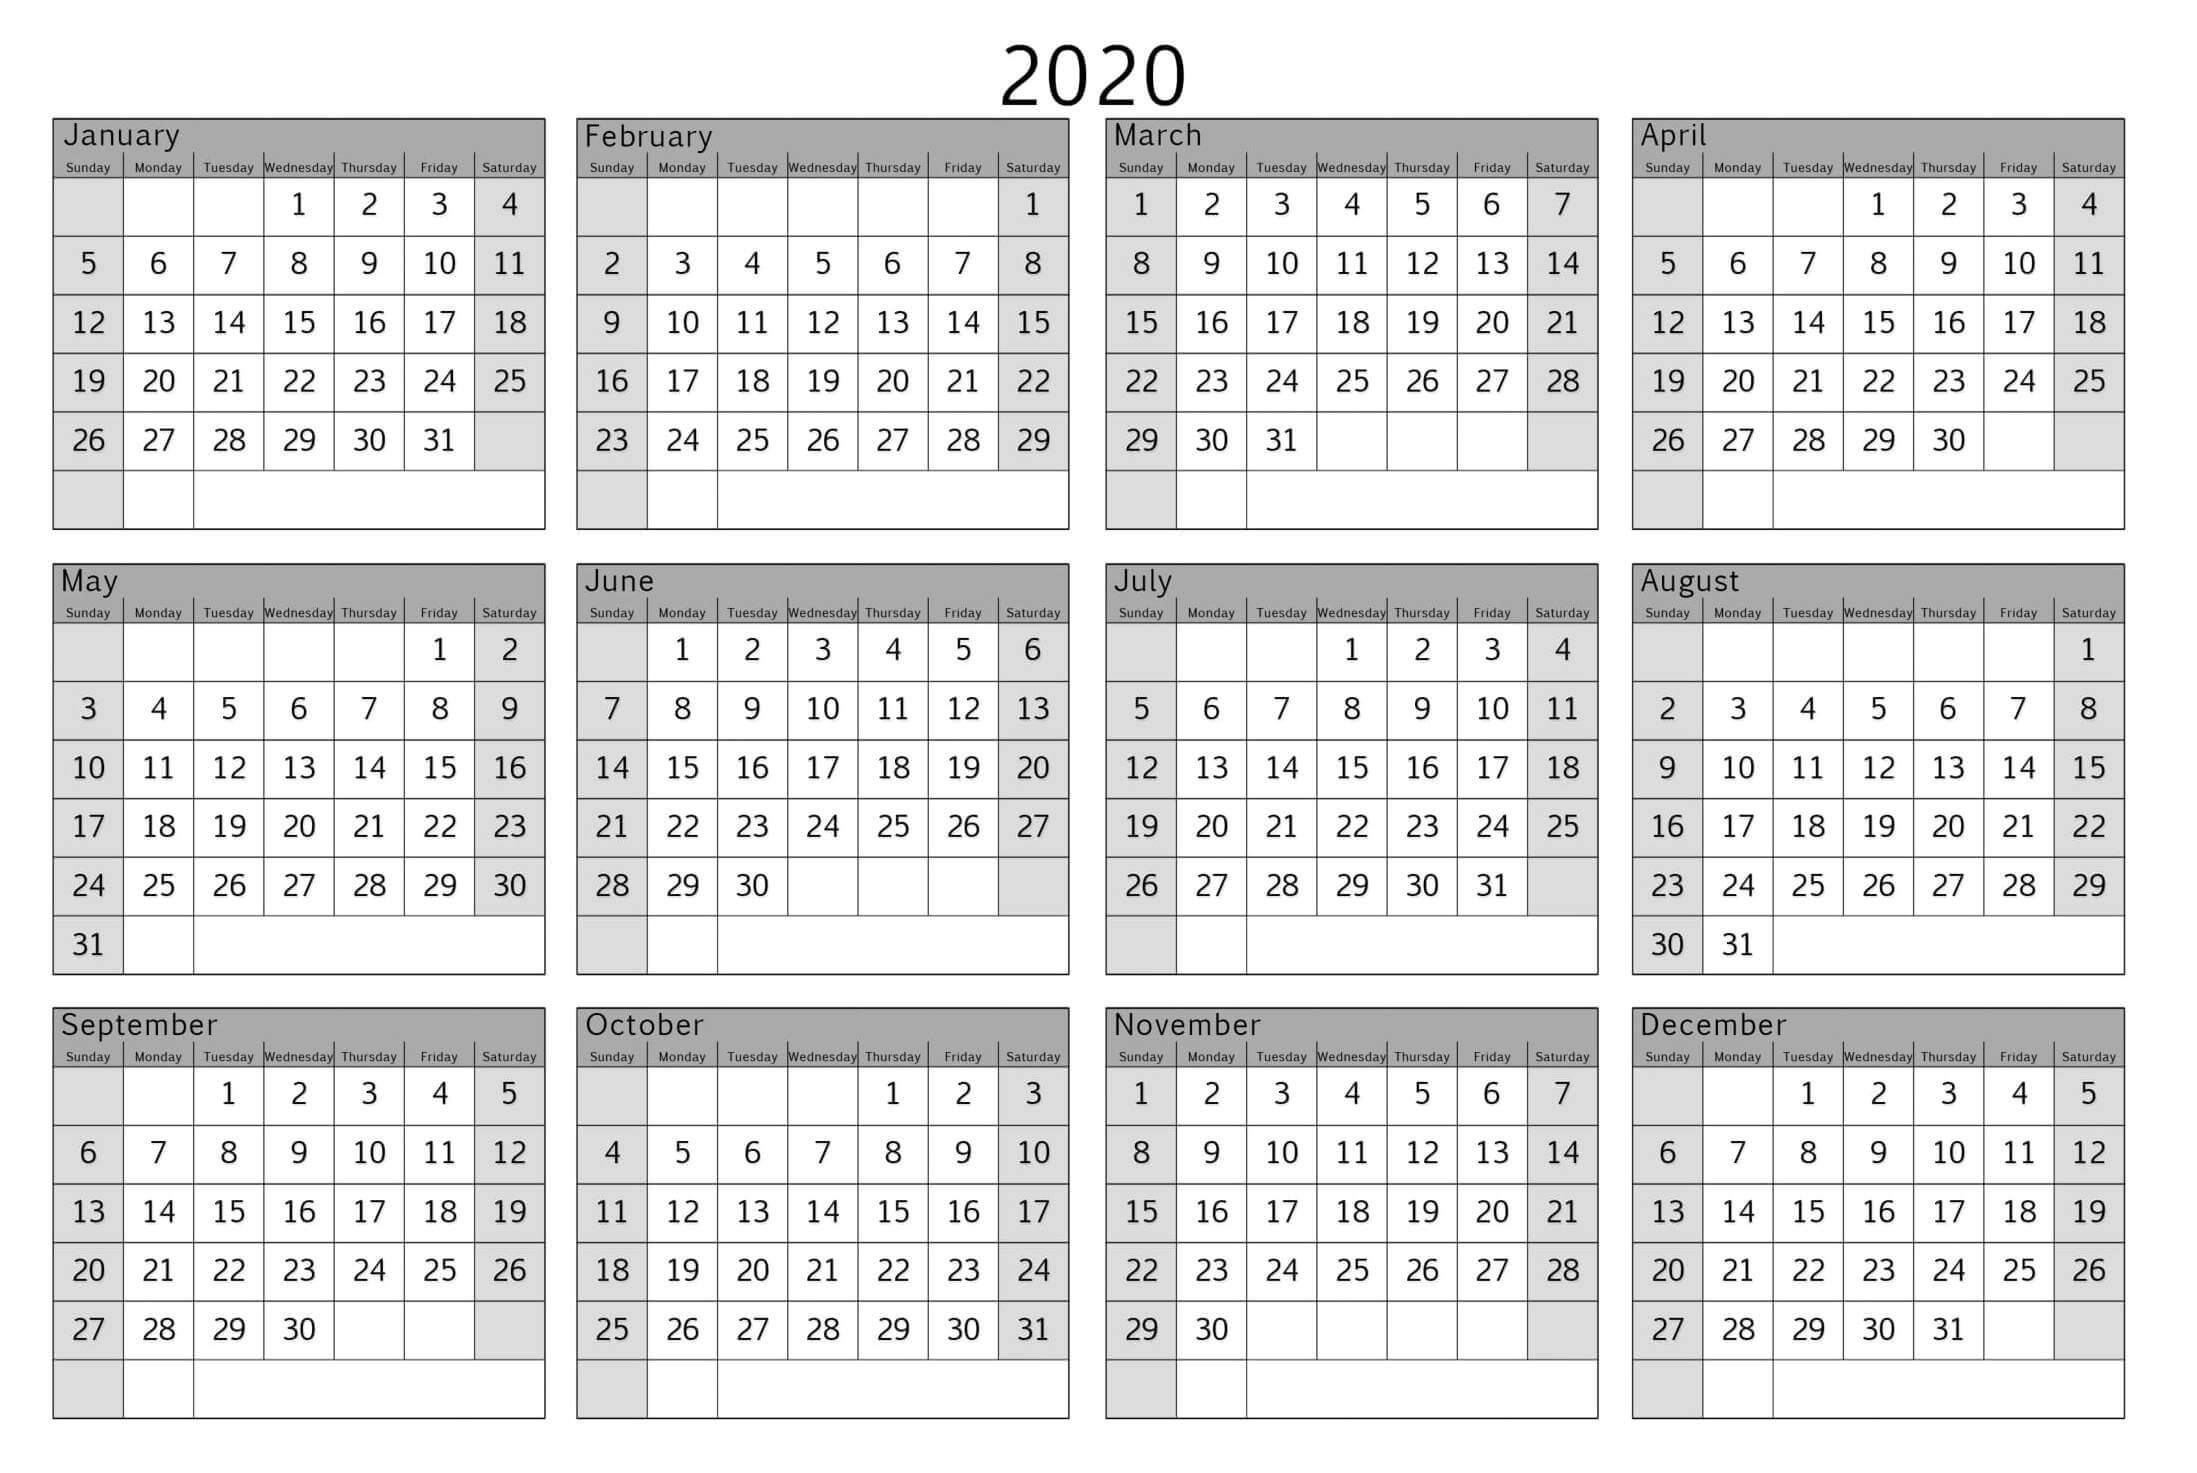 Colorful Yearly Calendar Template With Notes 2020 Word - Set intended for Printable Month At A Glance Calendar 2020